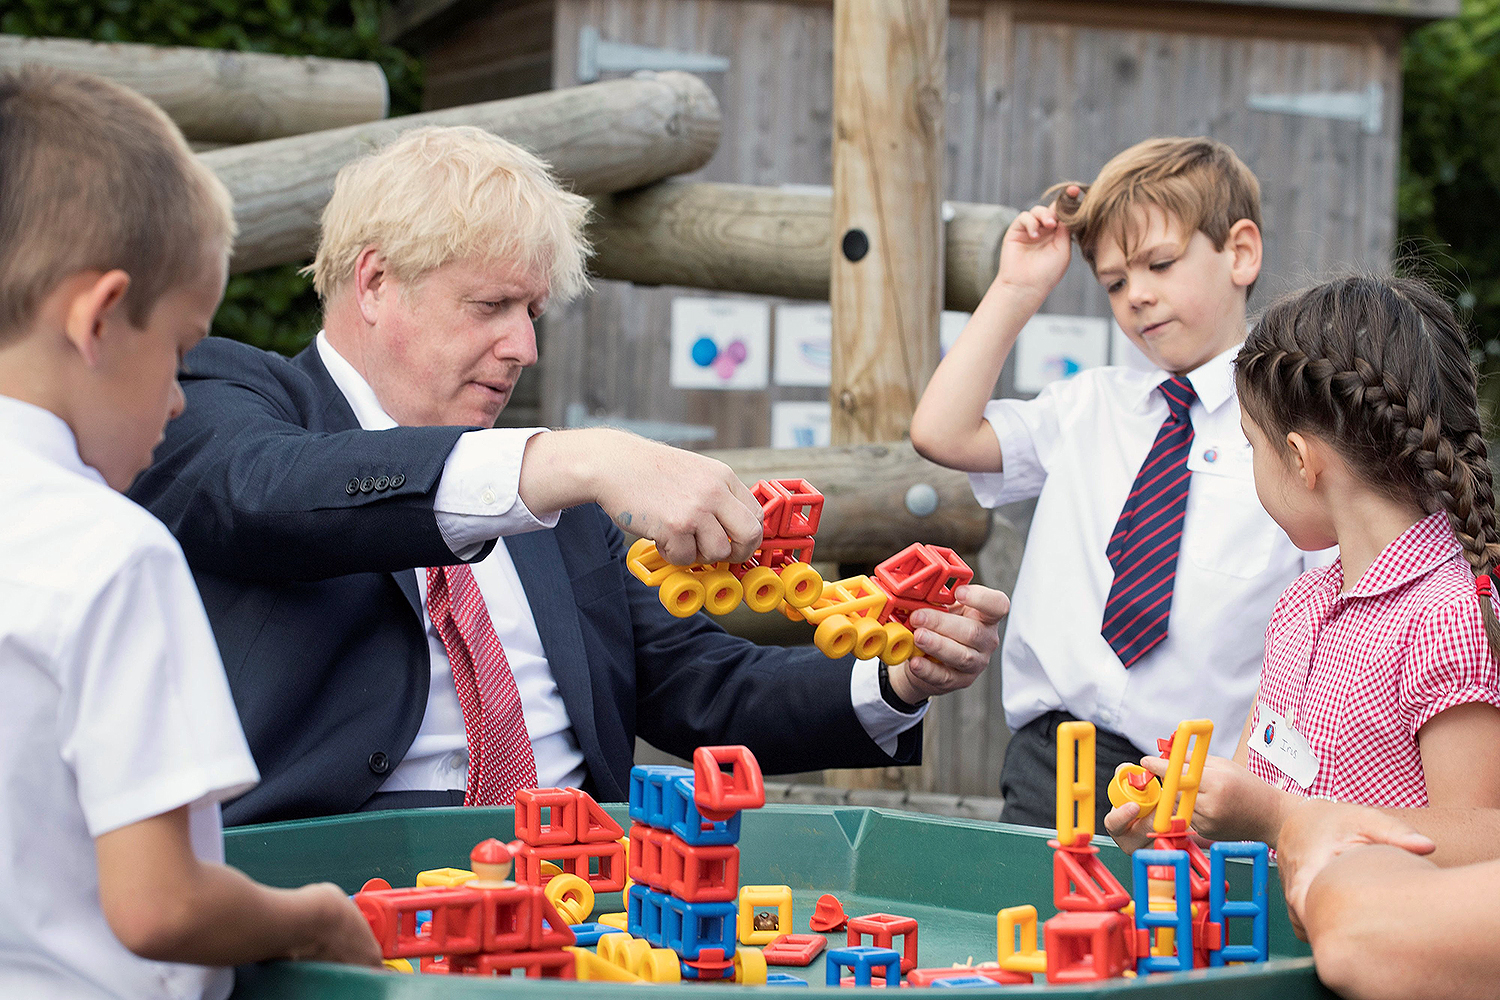 British Prime Minister Boris Johnson plays with children during a visit to The Discovery School in Kings Hill, England, on July 20. JEREMY SELWYN/POOL/AFP via Getty Images